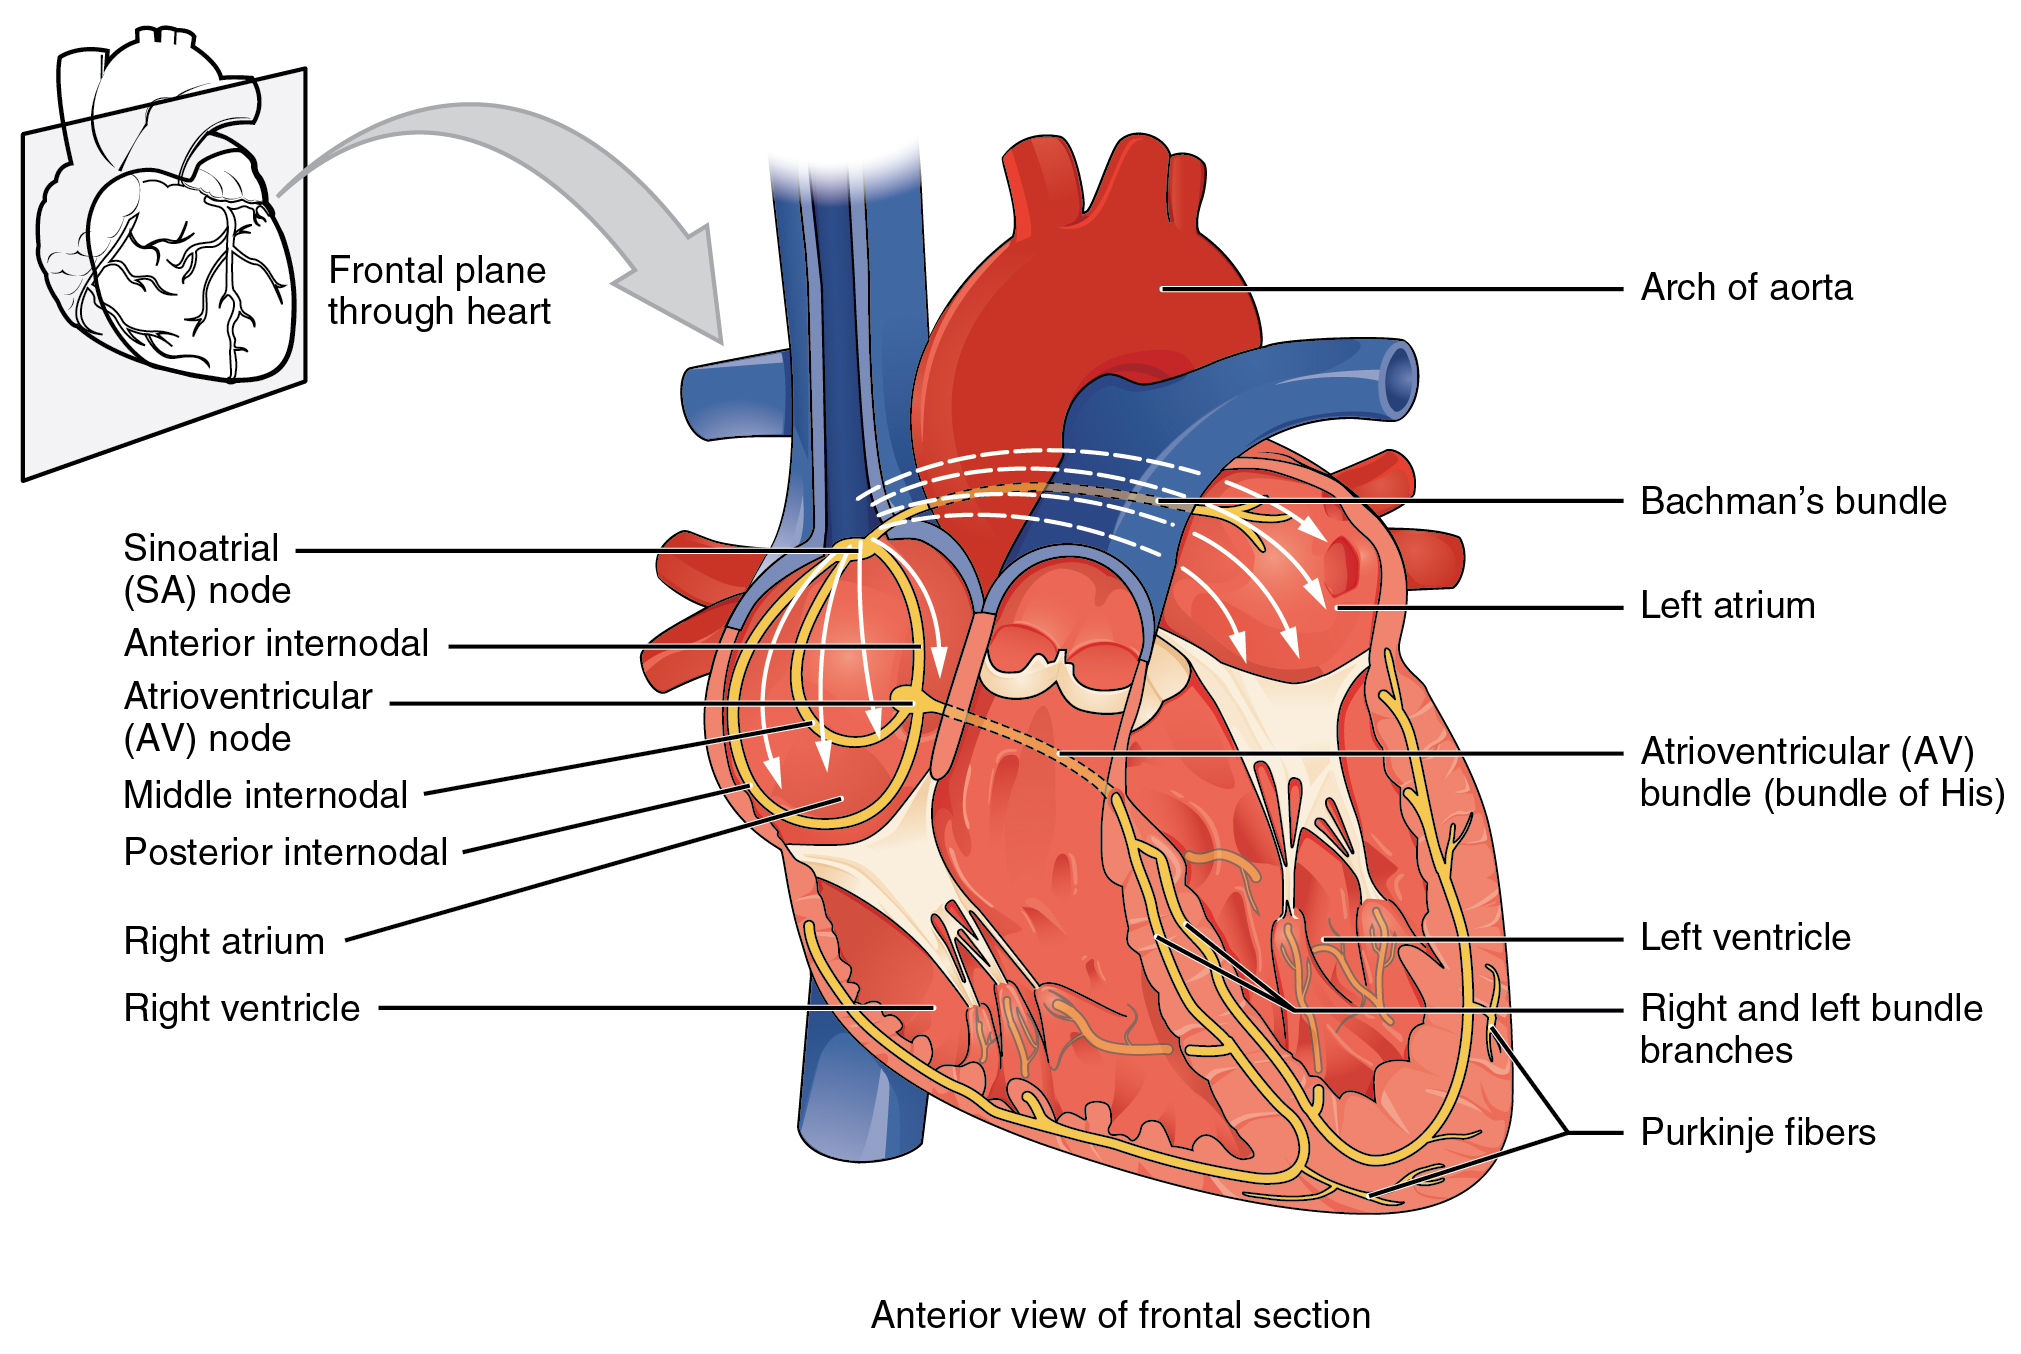 192 cardiac muscle and electrical activity anatomy and physiology this image shows the anterior view of the frontal section of the heart with the major ccuart Images